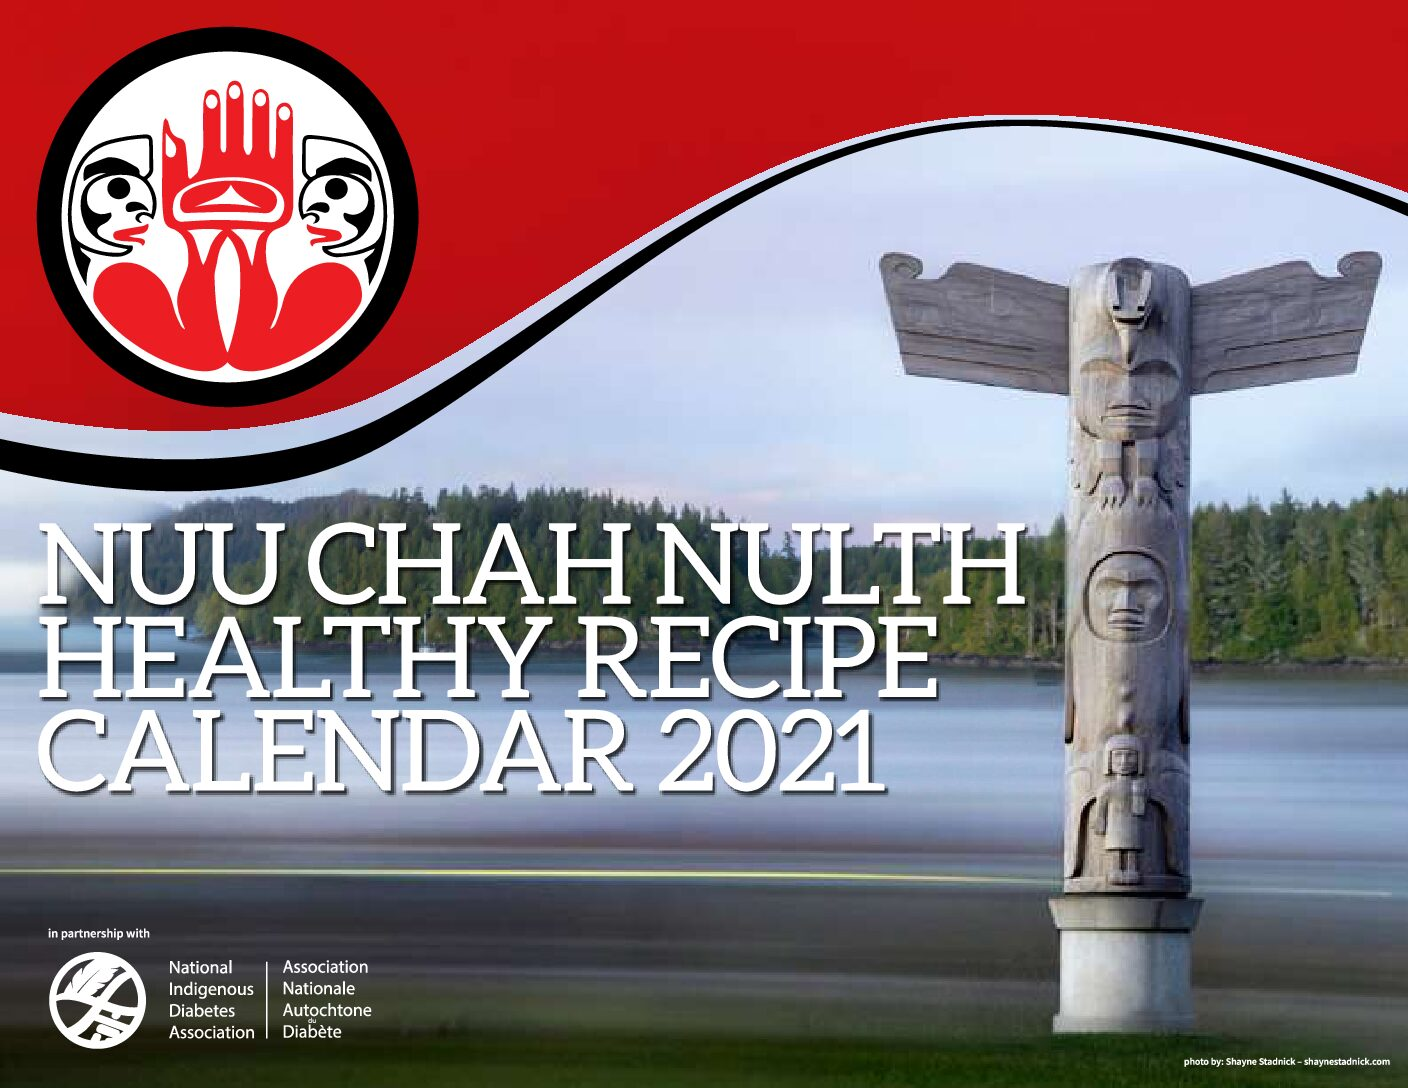 2021 Nuu-chah-nulth Healthy Recipe Calendar